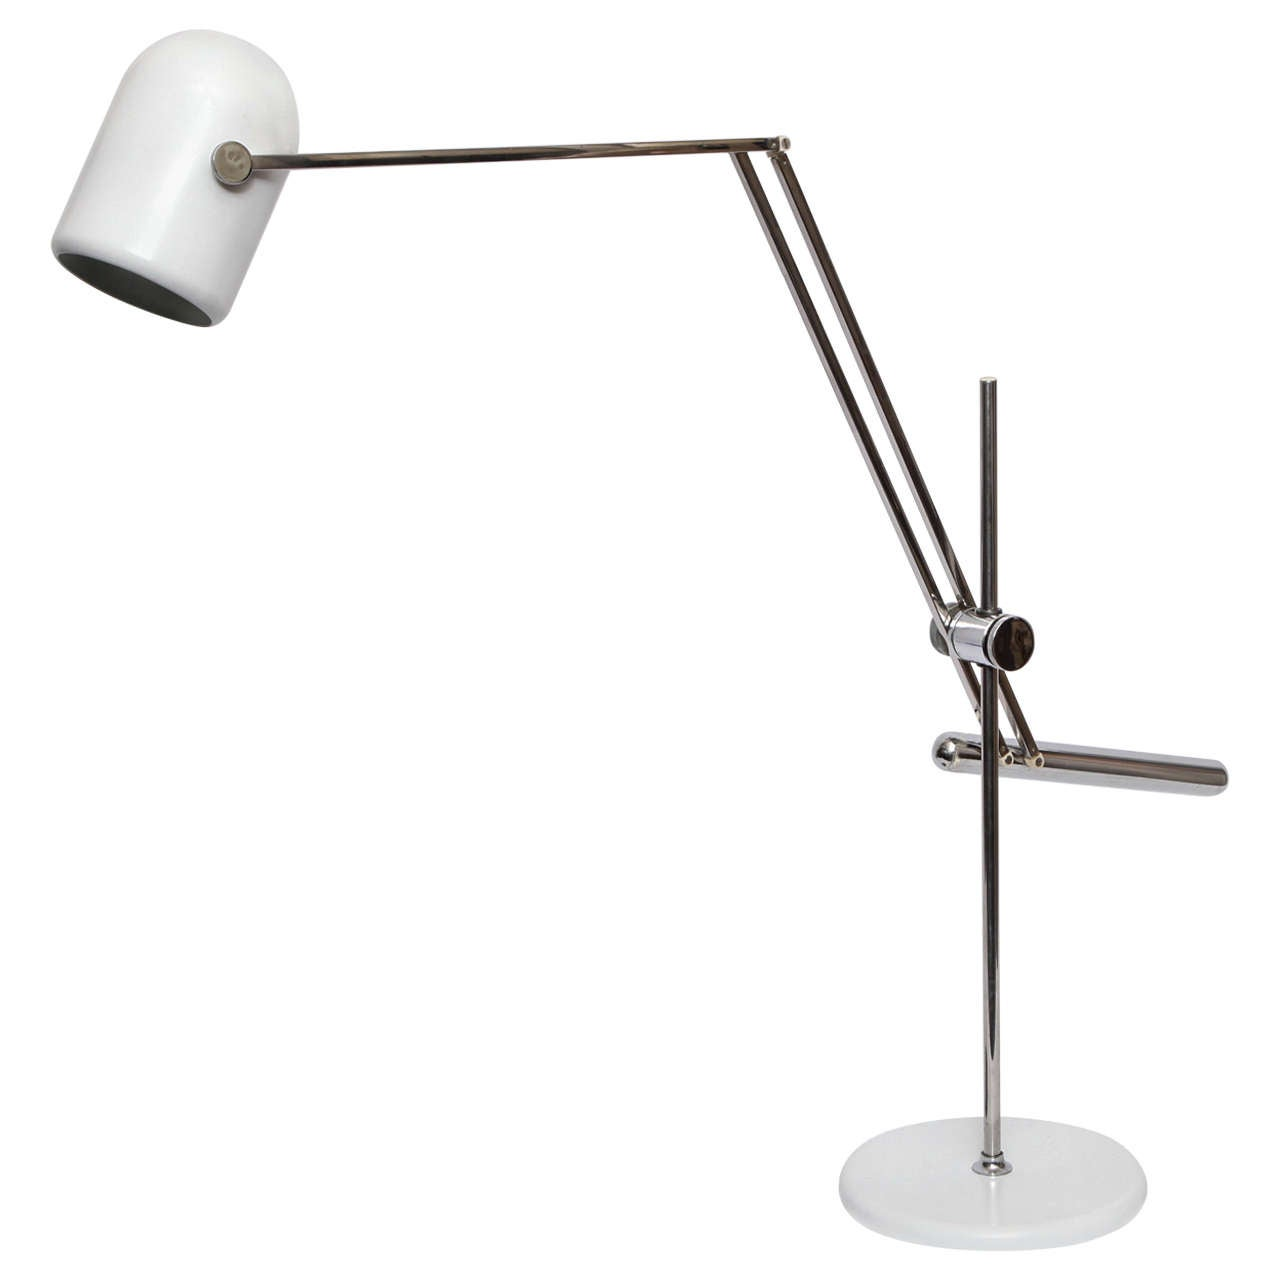 1960s Italian Articulated Table Lamp by Reggiani